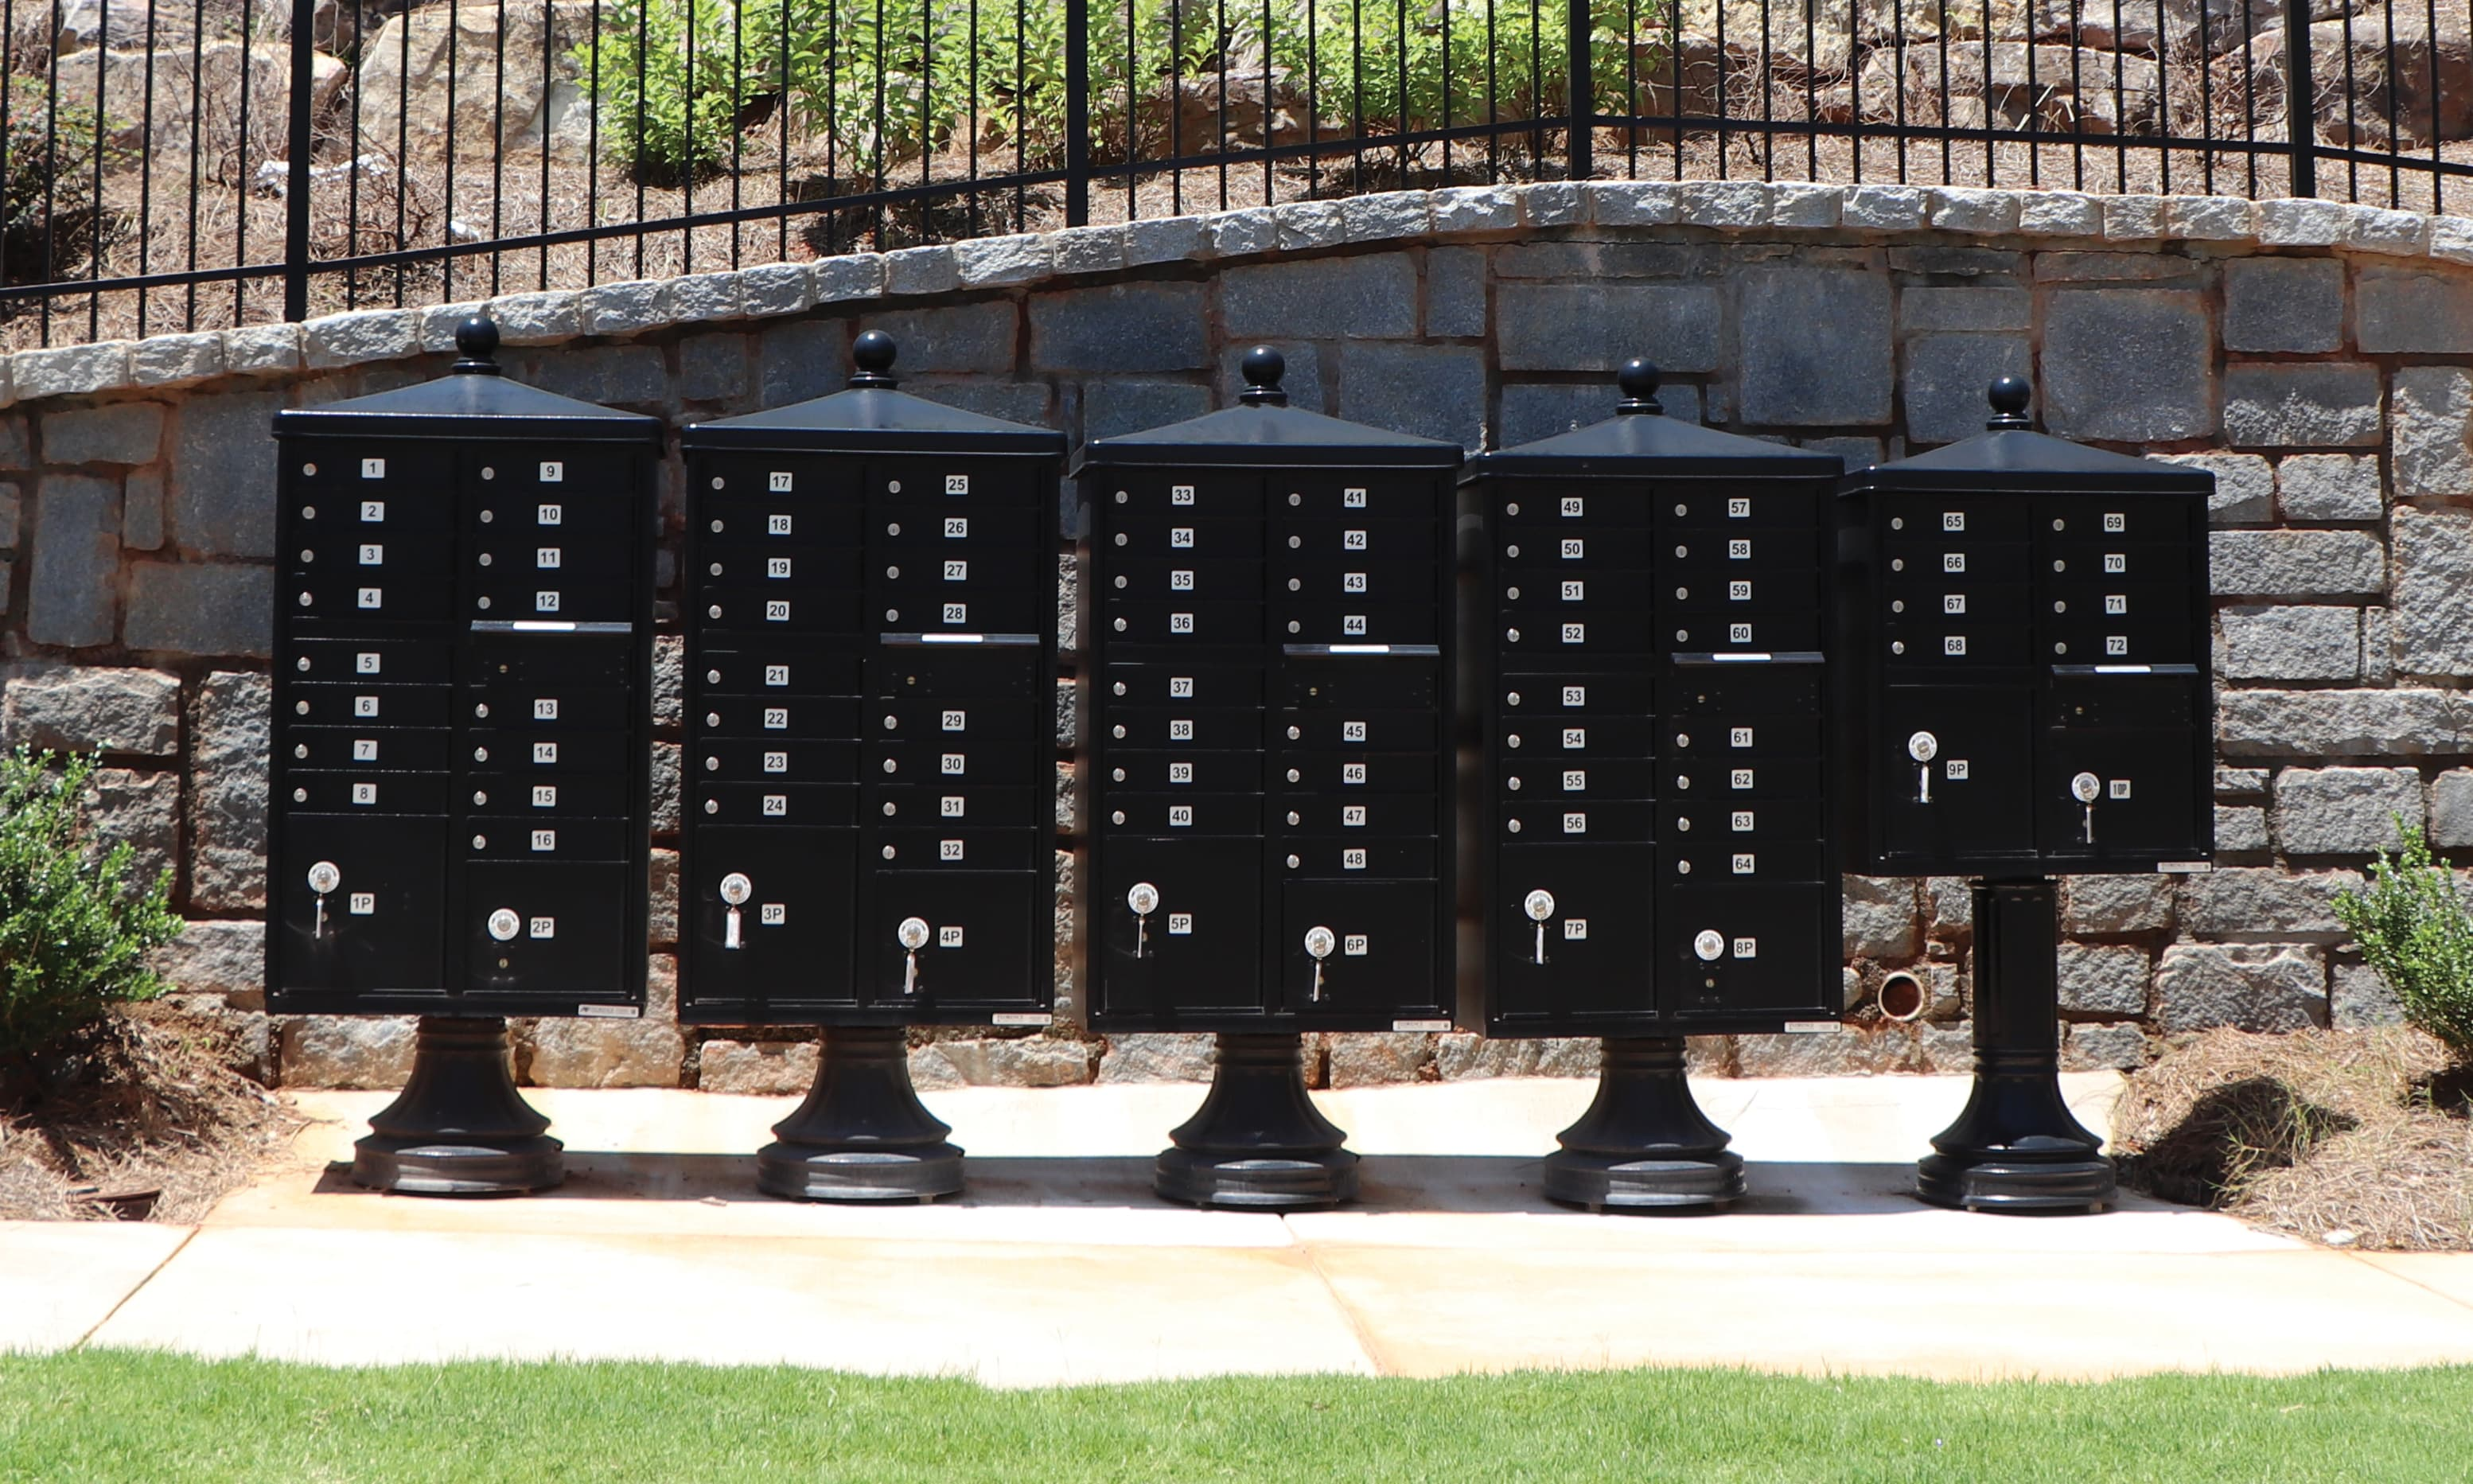 Cluster Box Unit Mailboxes